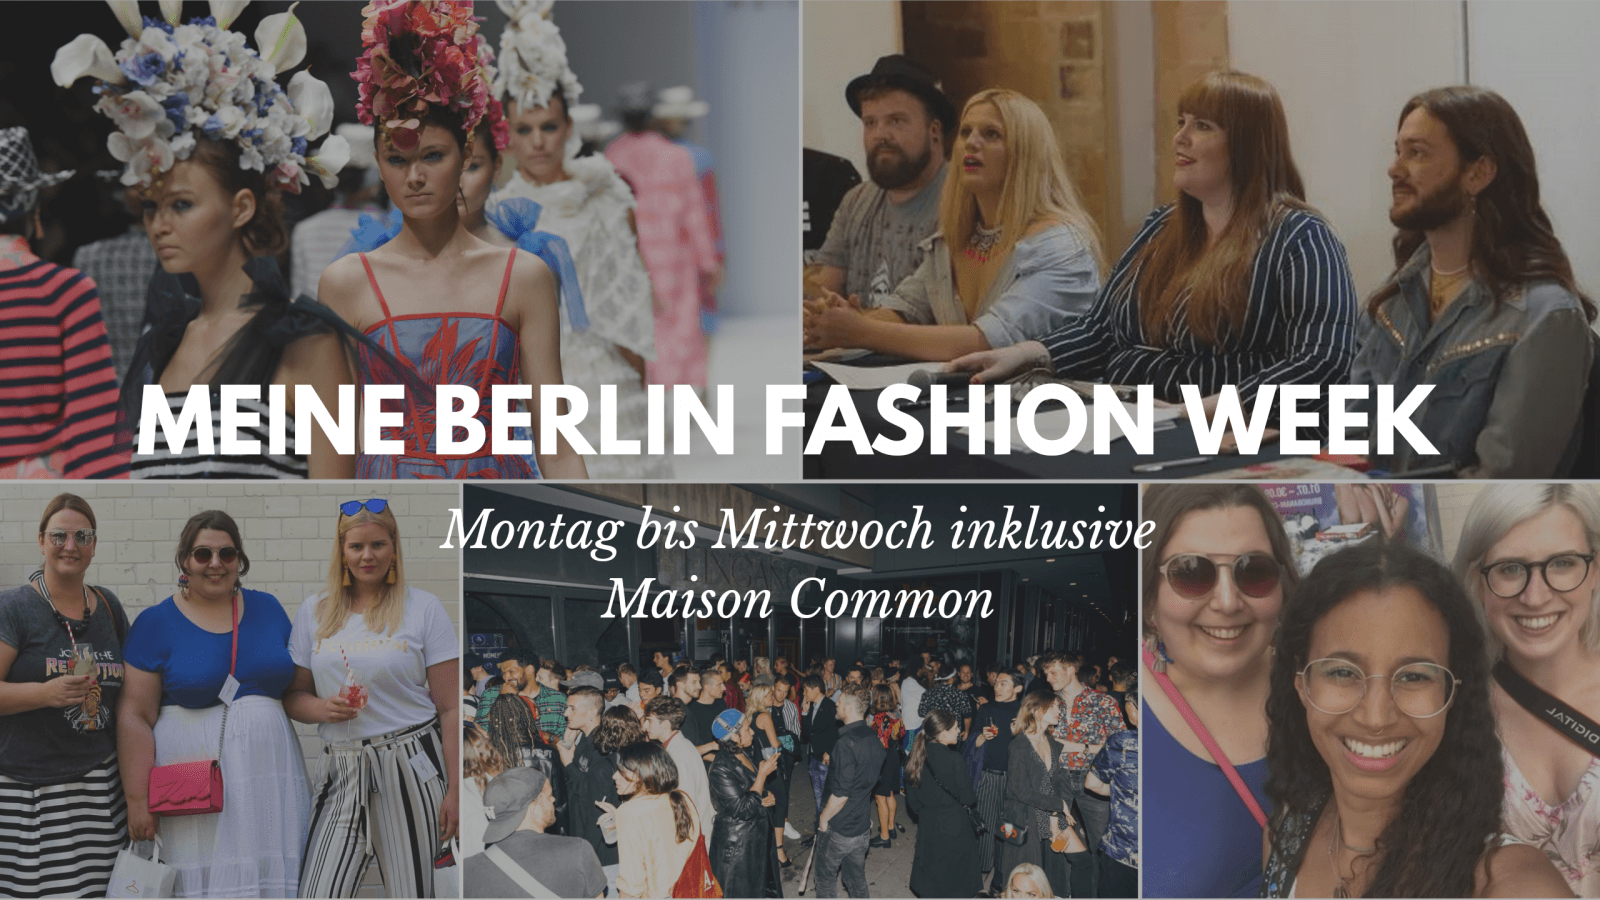 Meine Berlin Fashion Week inkl. Maison Common (Teil 1)